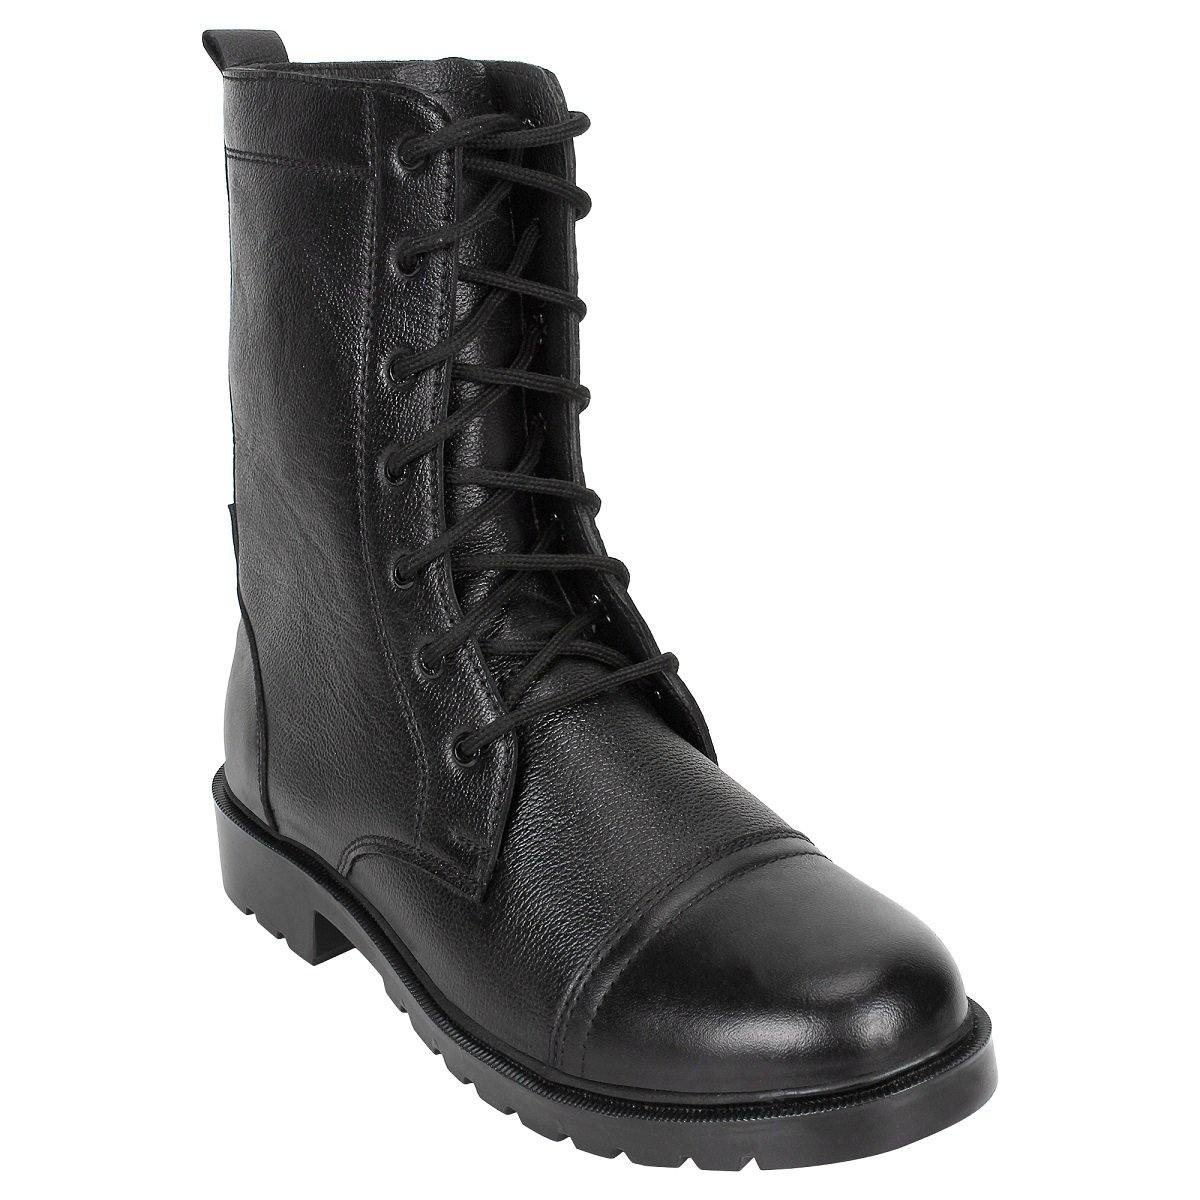 SeeandWear Leather Army Military Boots